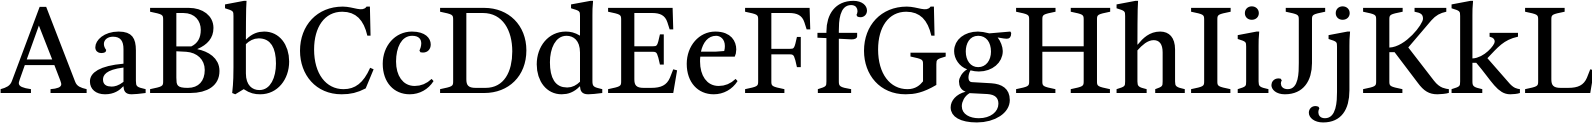 Nyte Book Font